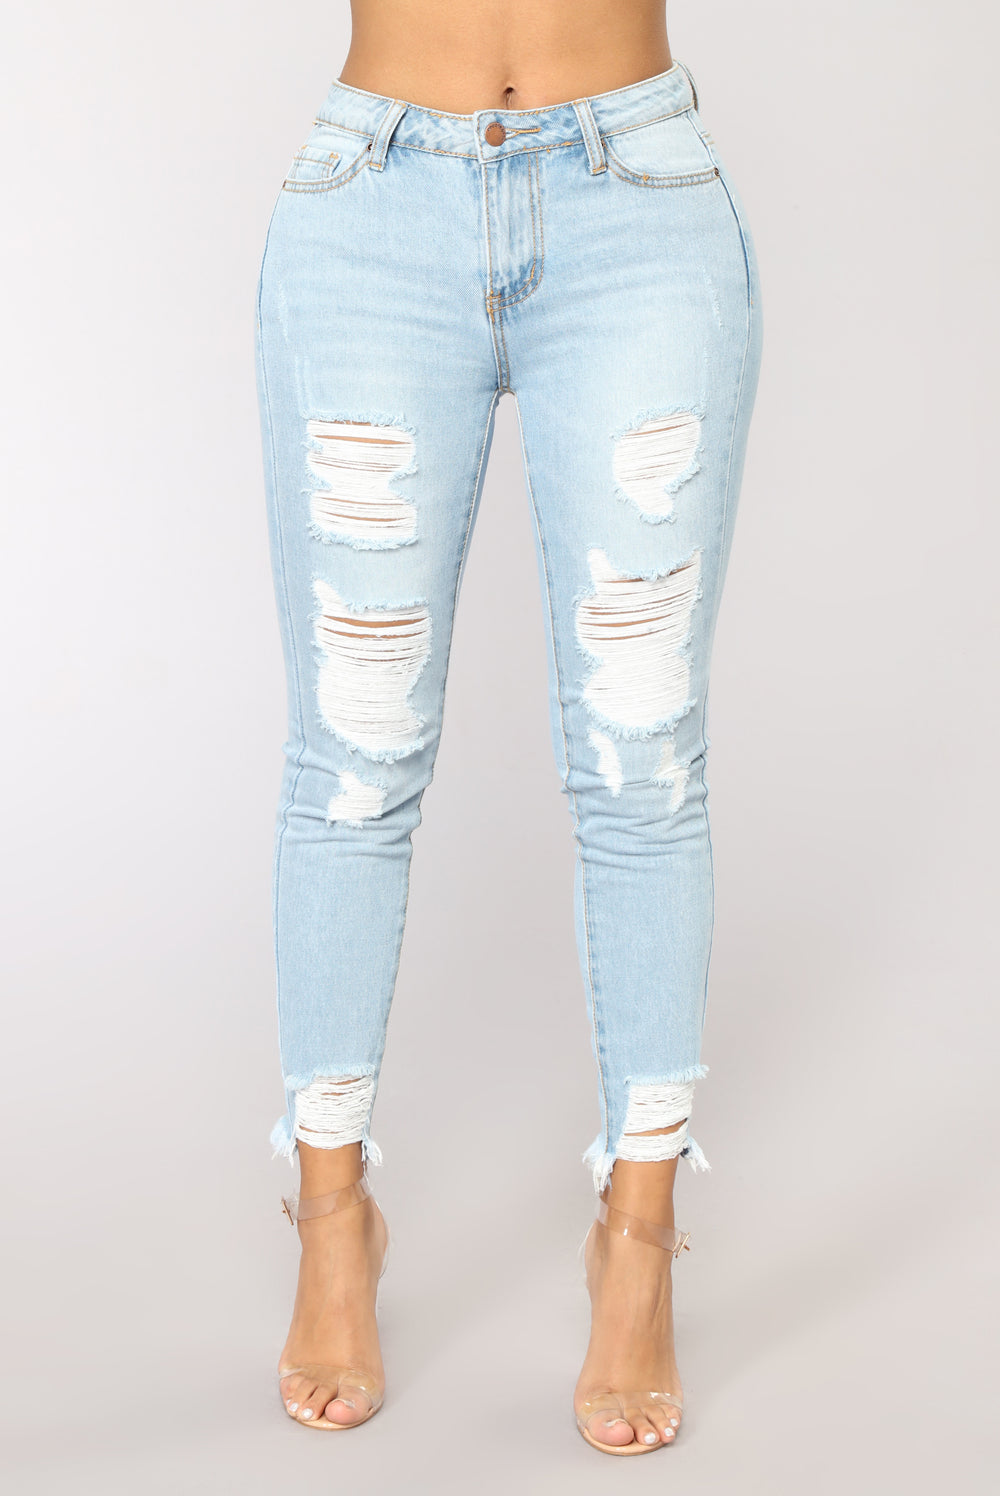 Dear Mamma Distressed Ankle Jeans - Light Blue Wash